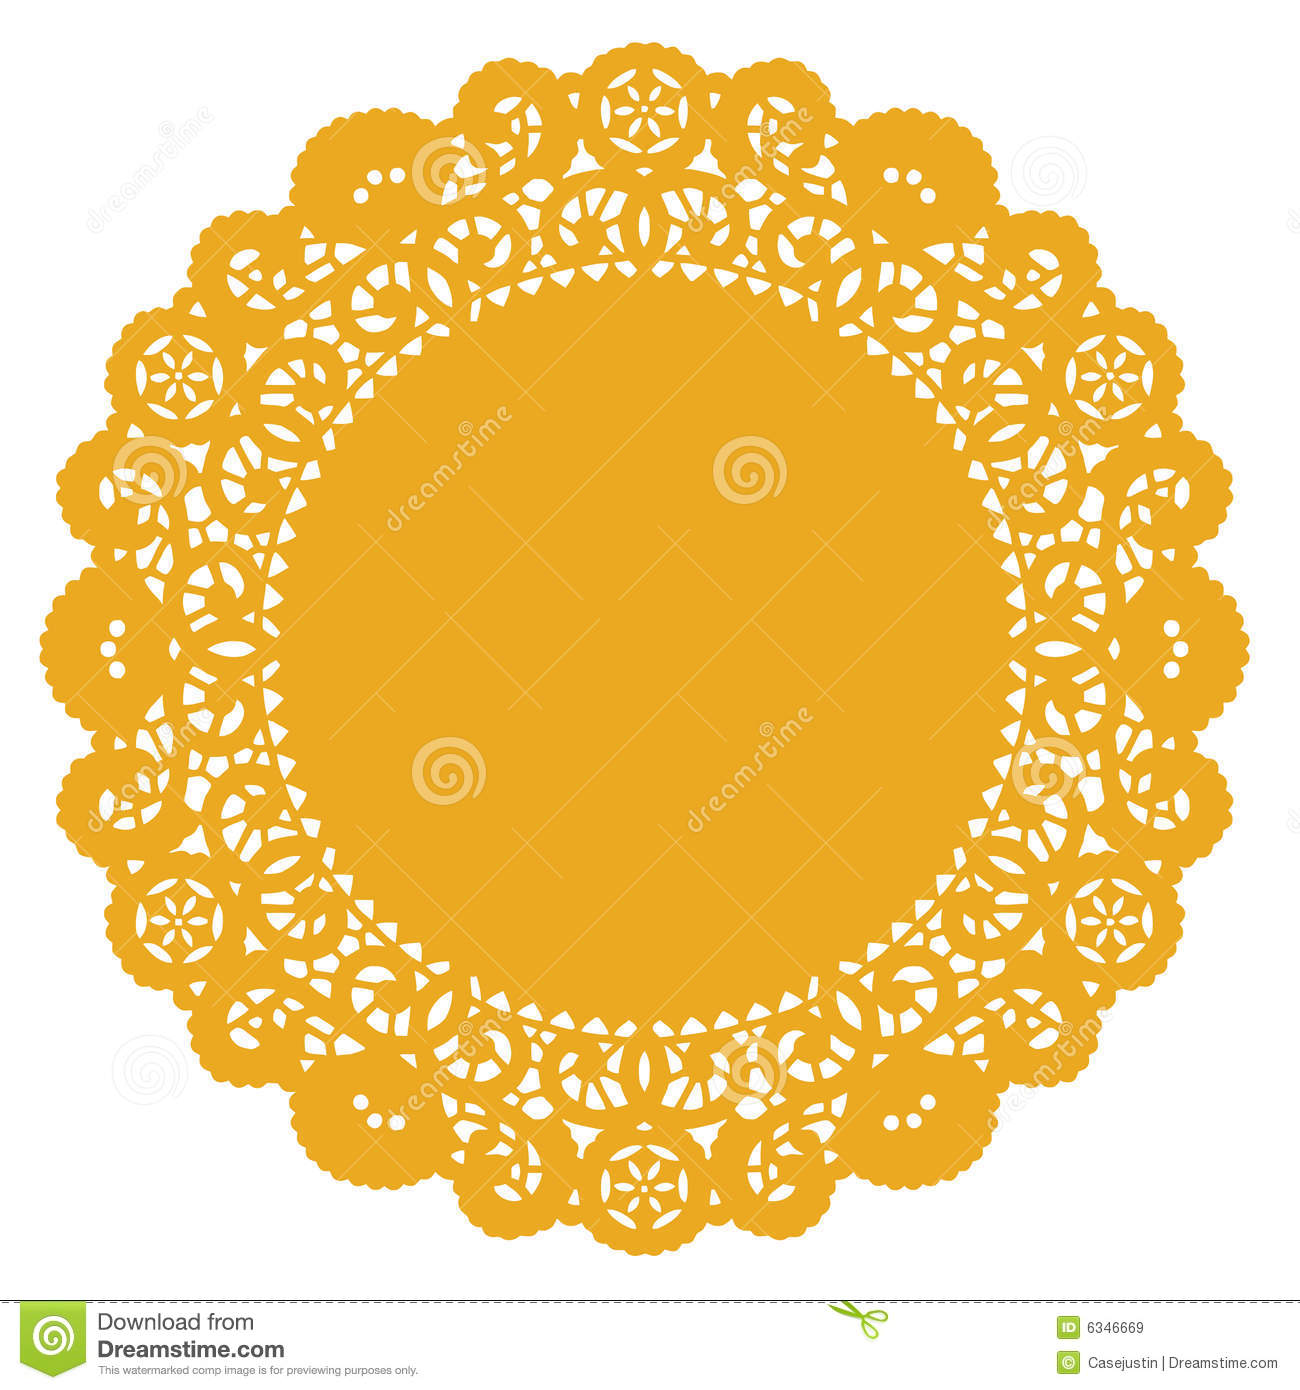 Decorative yellow lace doily place mat for Thanksgiving, harvest ...